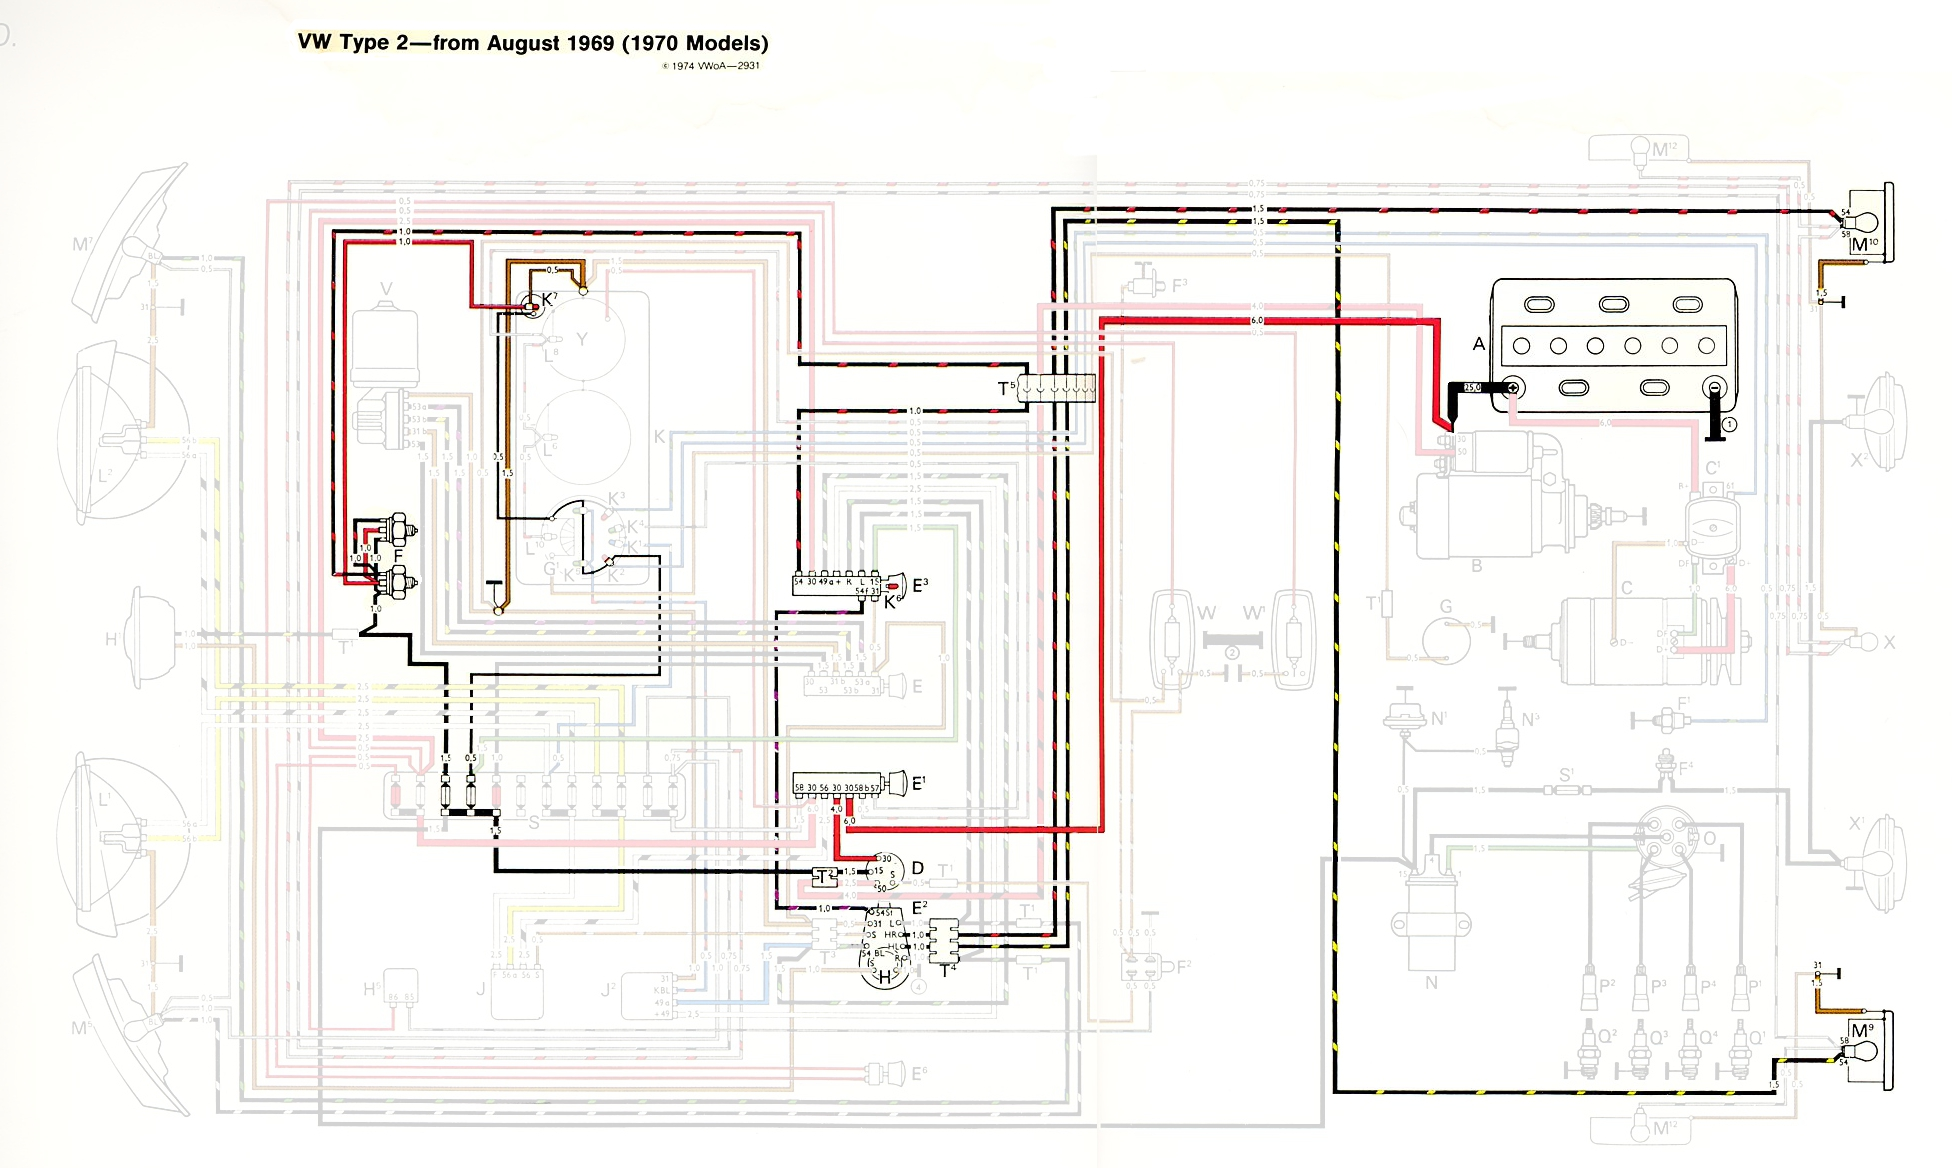 Type 2 Wiring Diagrams 1970 Vw Diagram